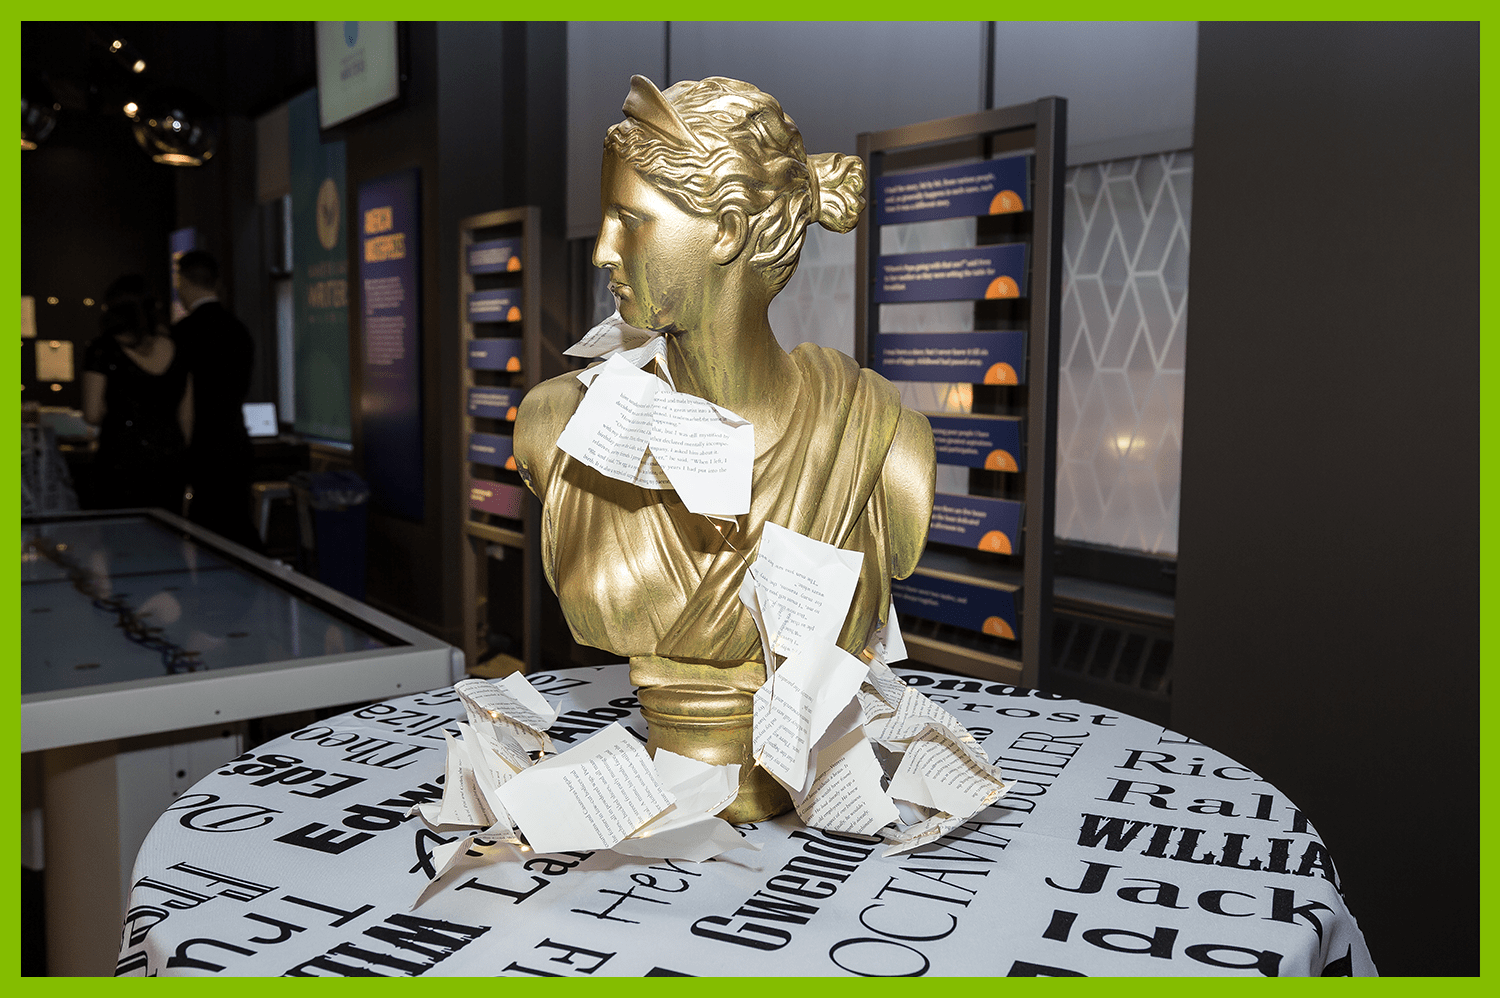 decorative gold bust draped with cut book pages sitting on a table in the Mind of a Writer gallery